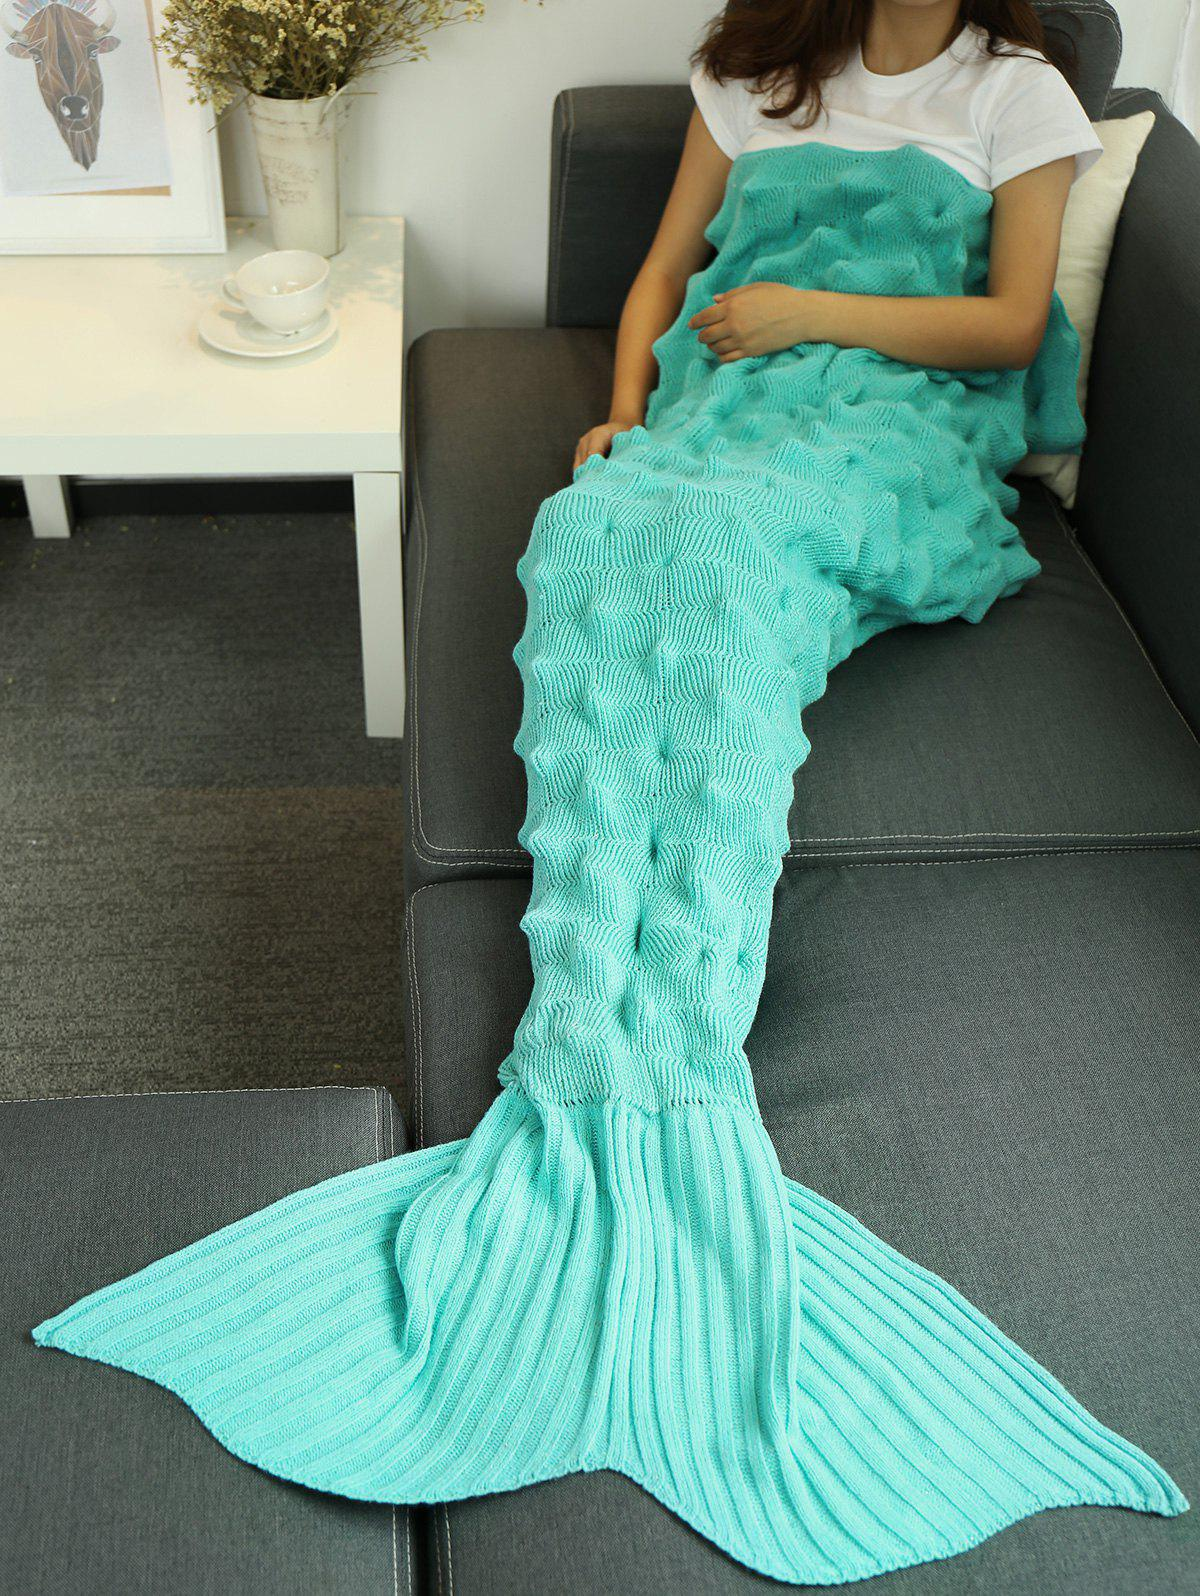 Yarn Knitted Wrap Throw Mermaid Tail BlanketHOME<br><br>Size: 150*90CM; Color: LAKE BLUE; Type: Knitted; Material: Acrylic,Polyester; Pattern Type: Solid; Size(L*W)(CM): 160*90CM; Weight: 1.0800kg; Package Contents: 1 x Mermaid Blanket;